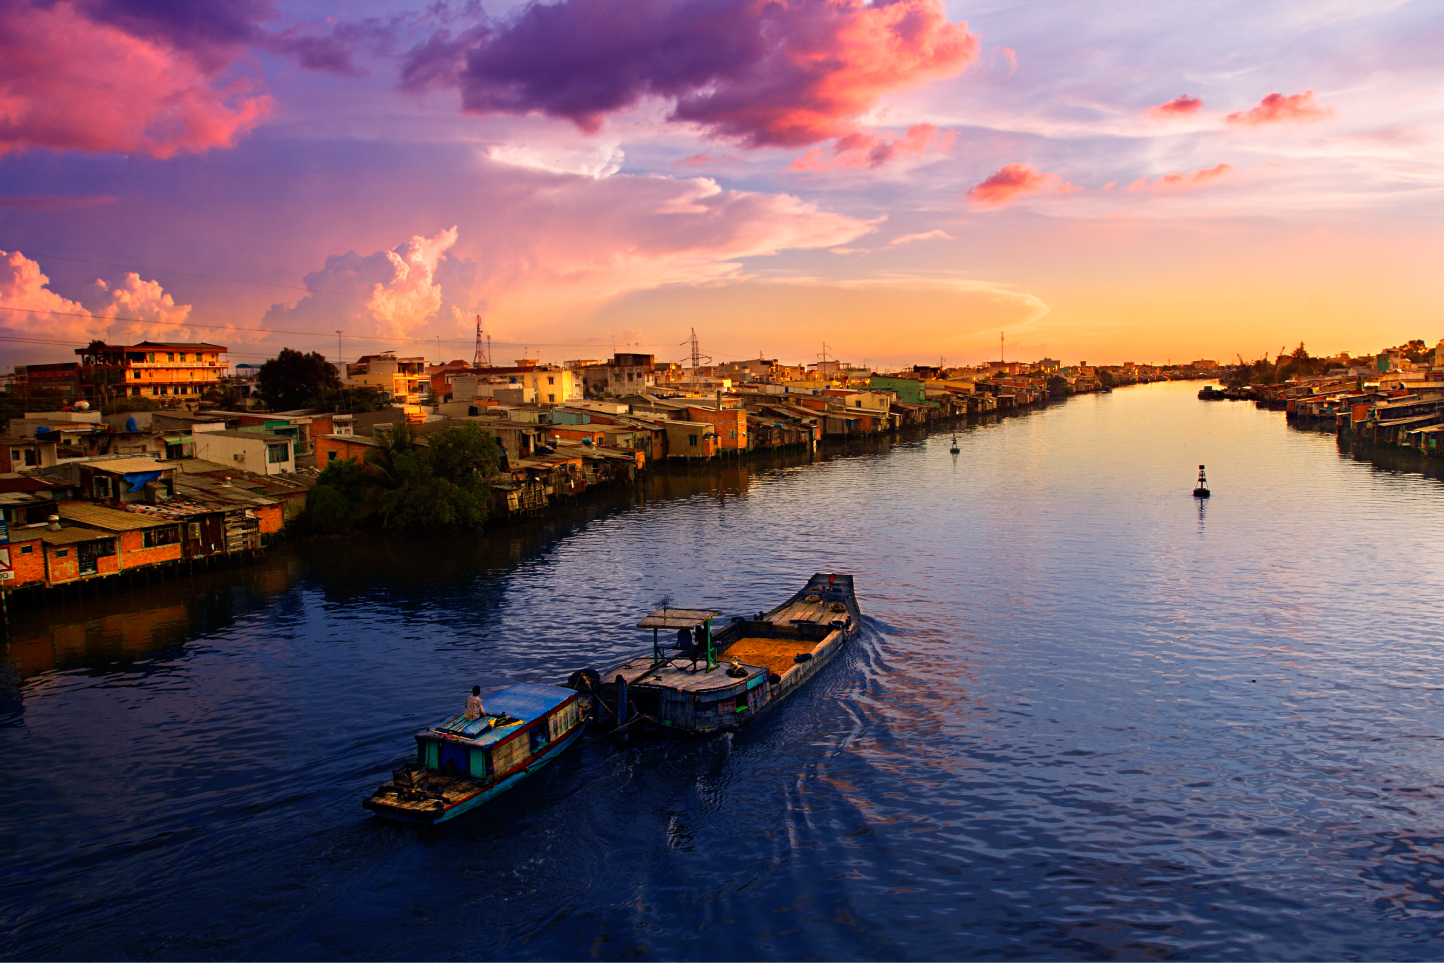 Sunset over the Mekong river...